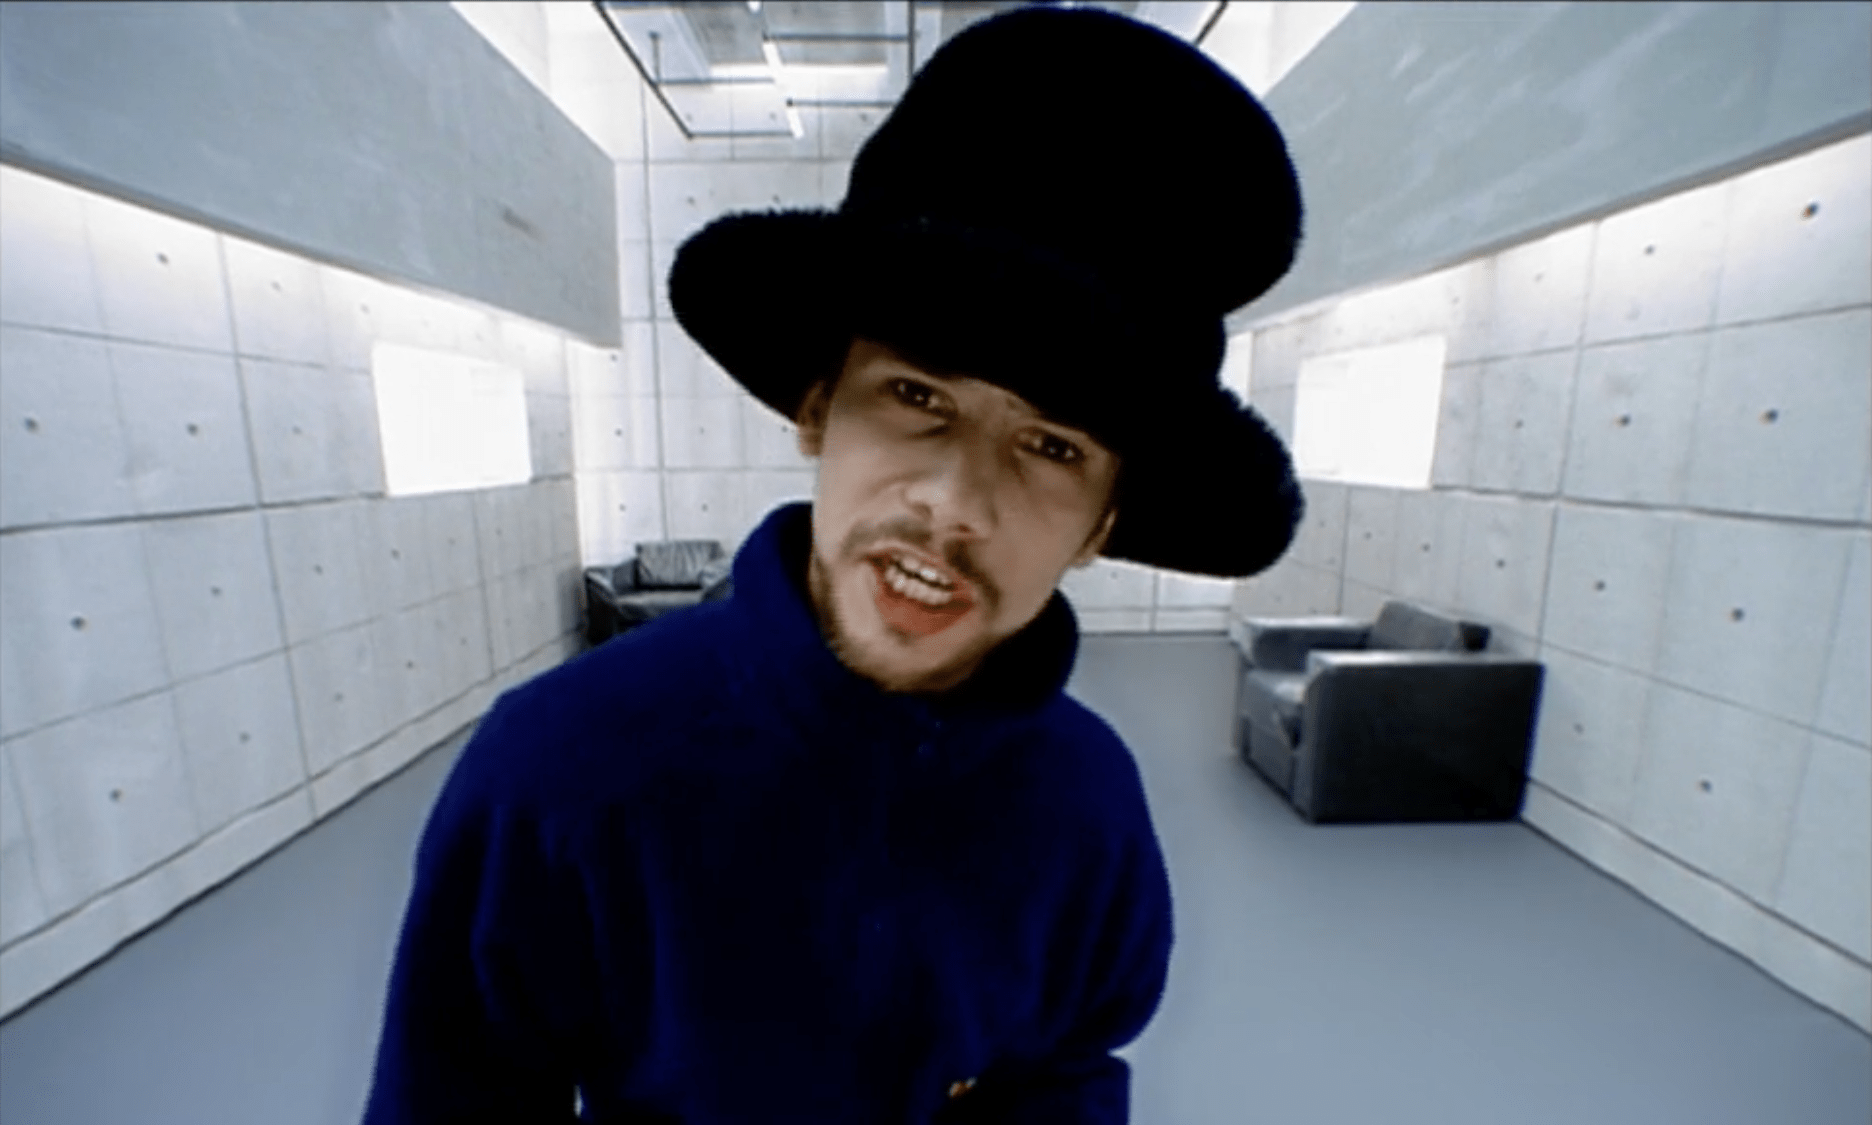 a04f548d3250 Image credit  Jamiroquai - Sony Music Entertainment